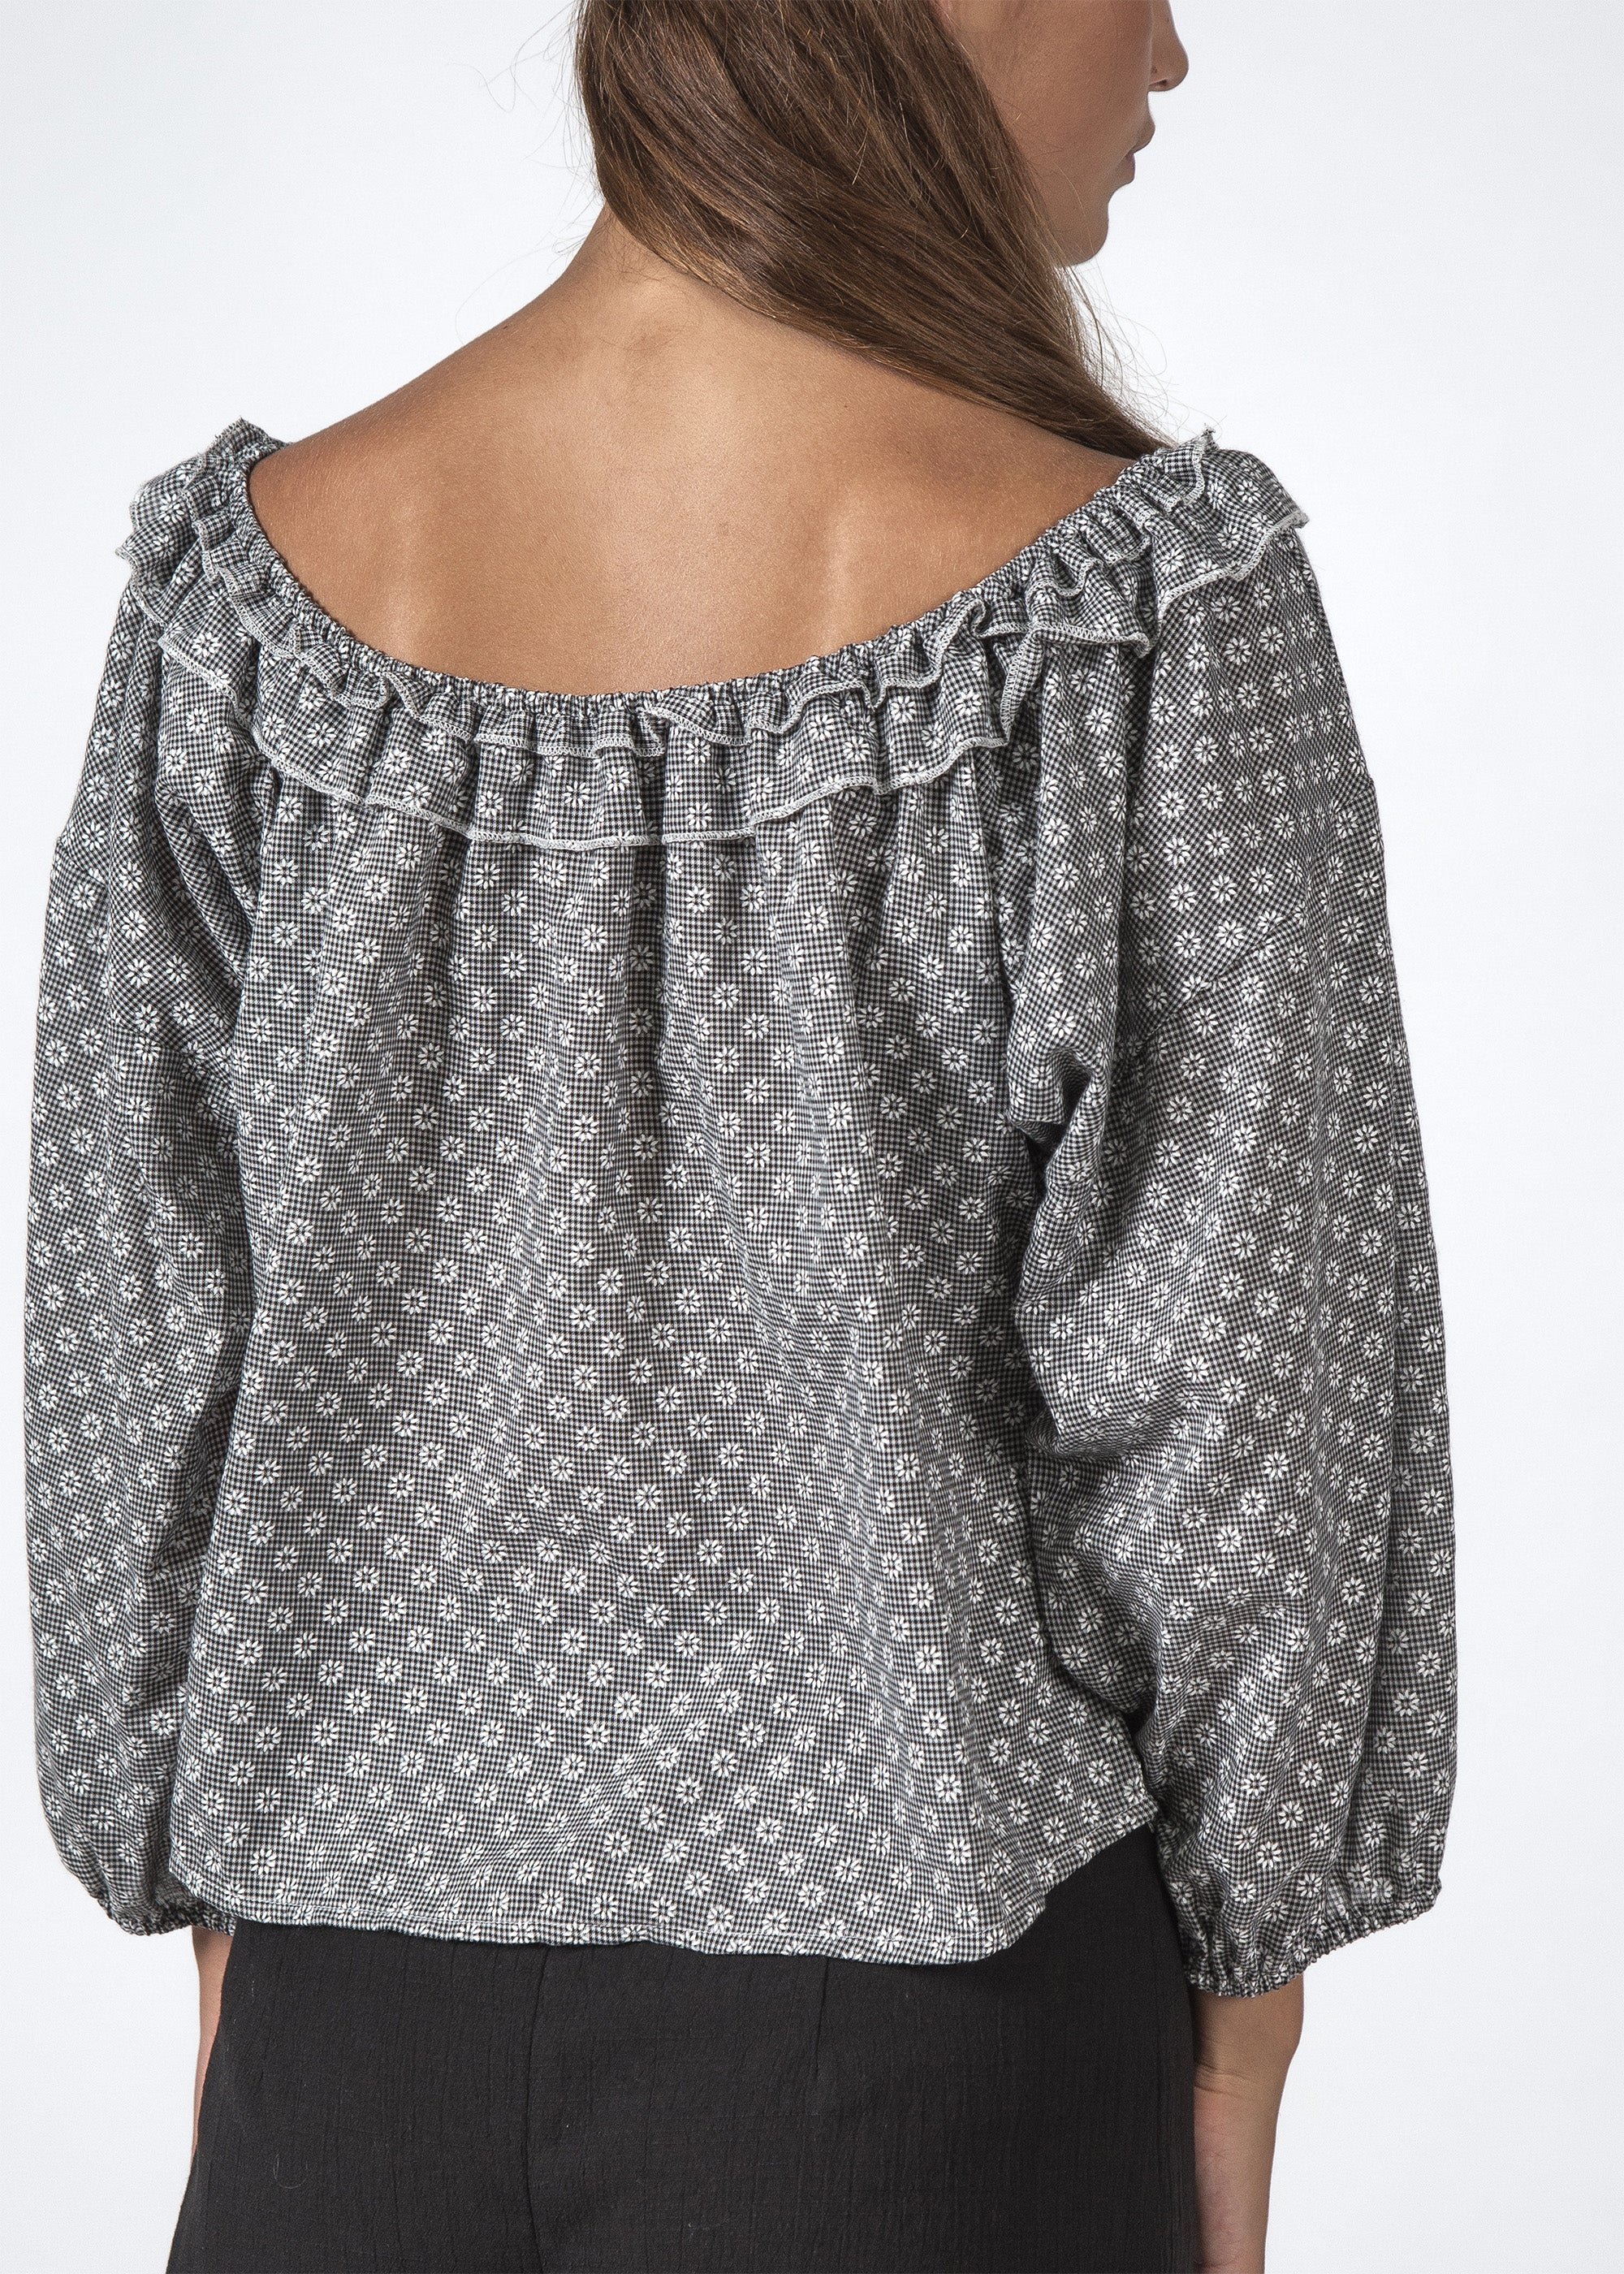 THE HARPER TOP DAISY CHECK